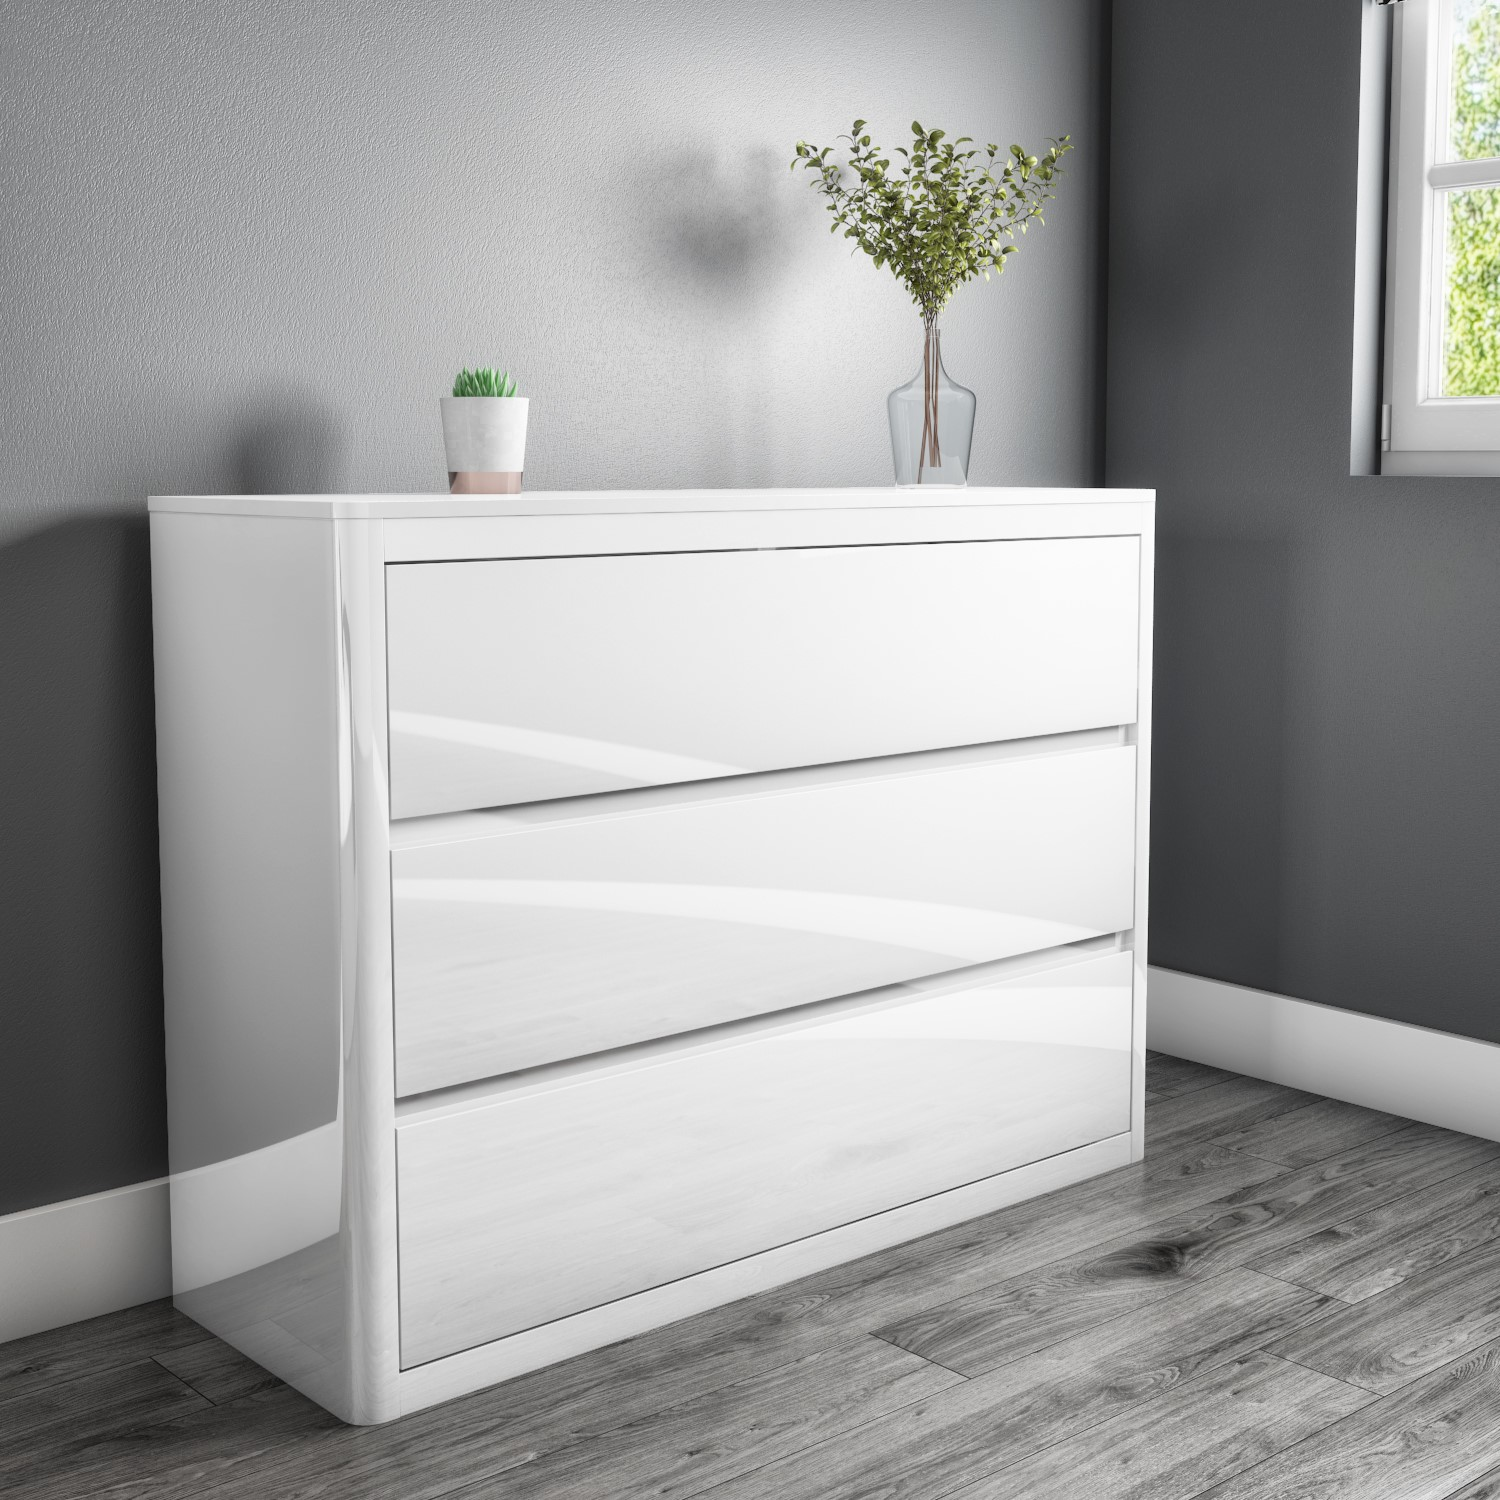 White High Gloss Wide Chest Of Drawers 3 Drawer Bedside